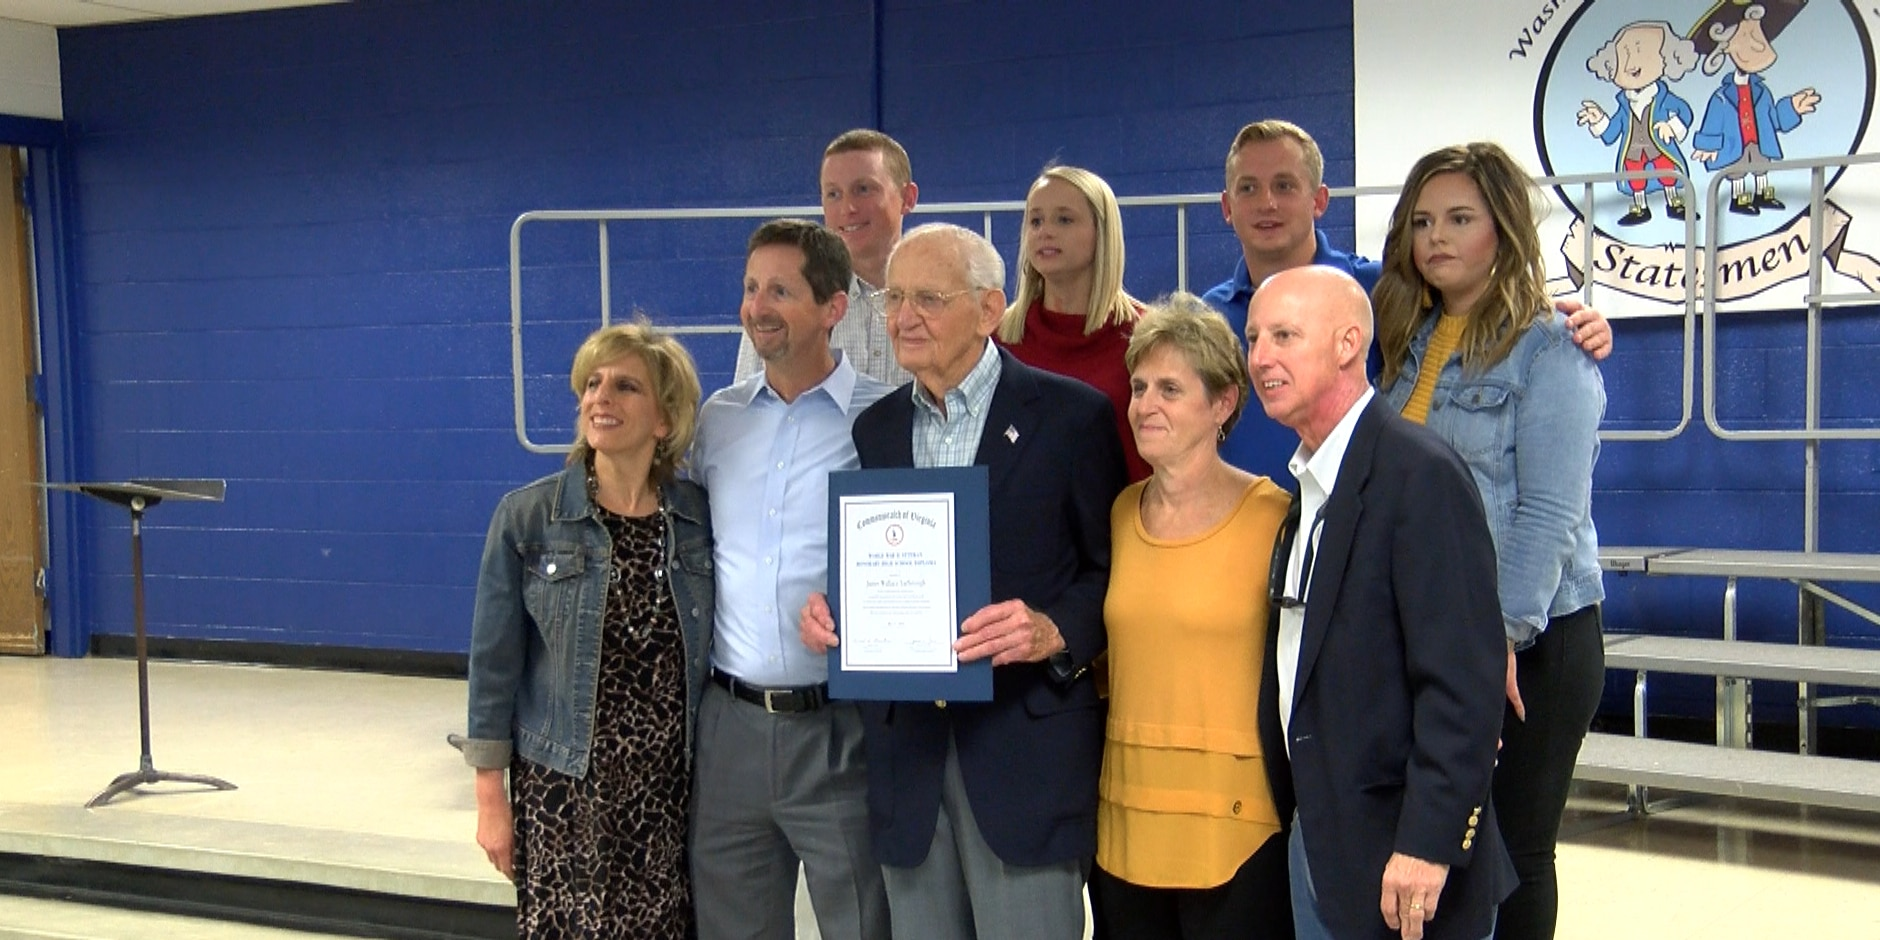 'It's quite an honor': 93-year-old veteran receives honorary high school diploma